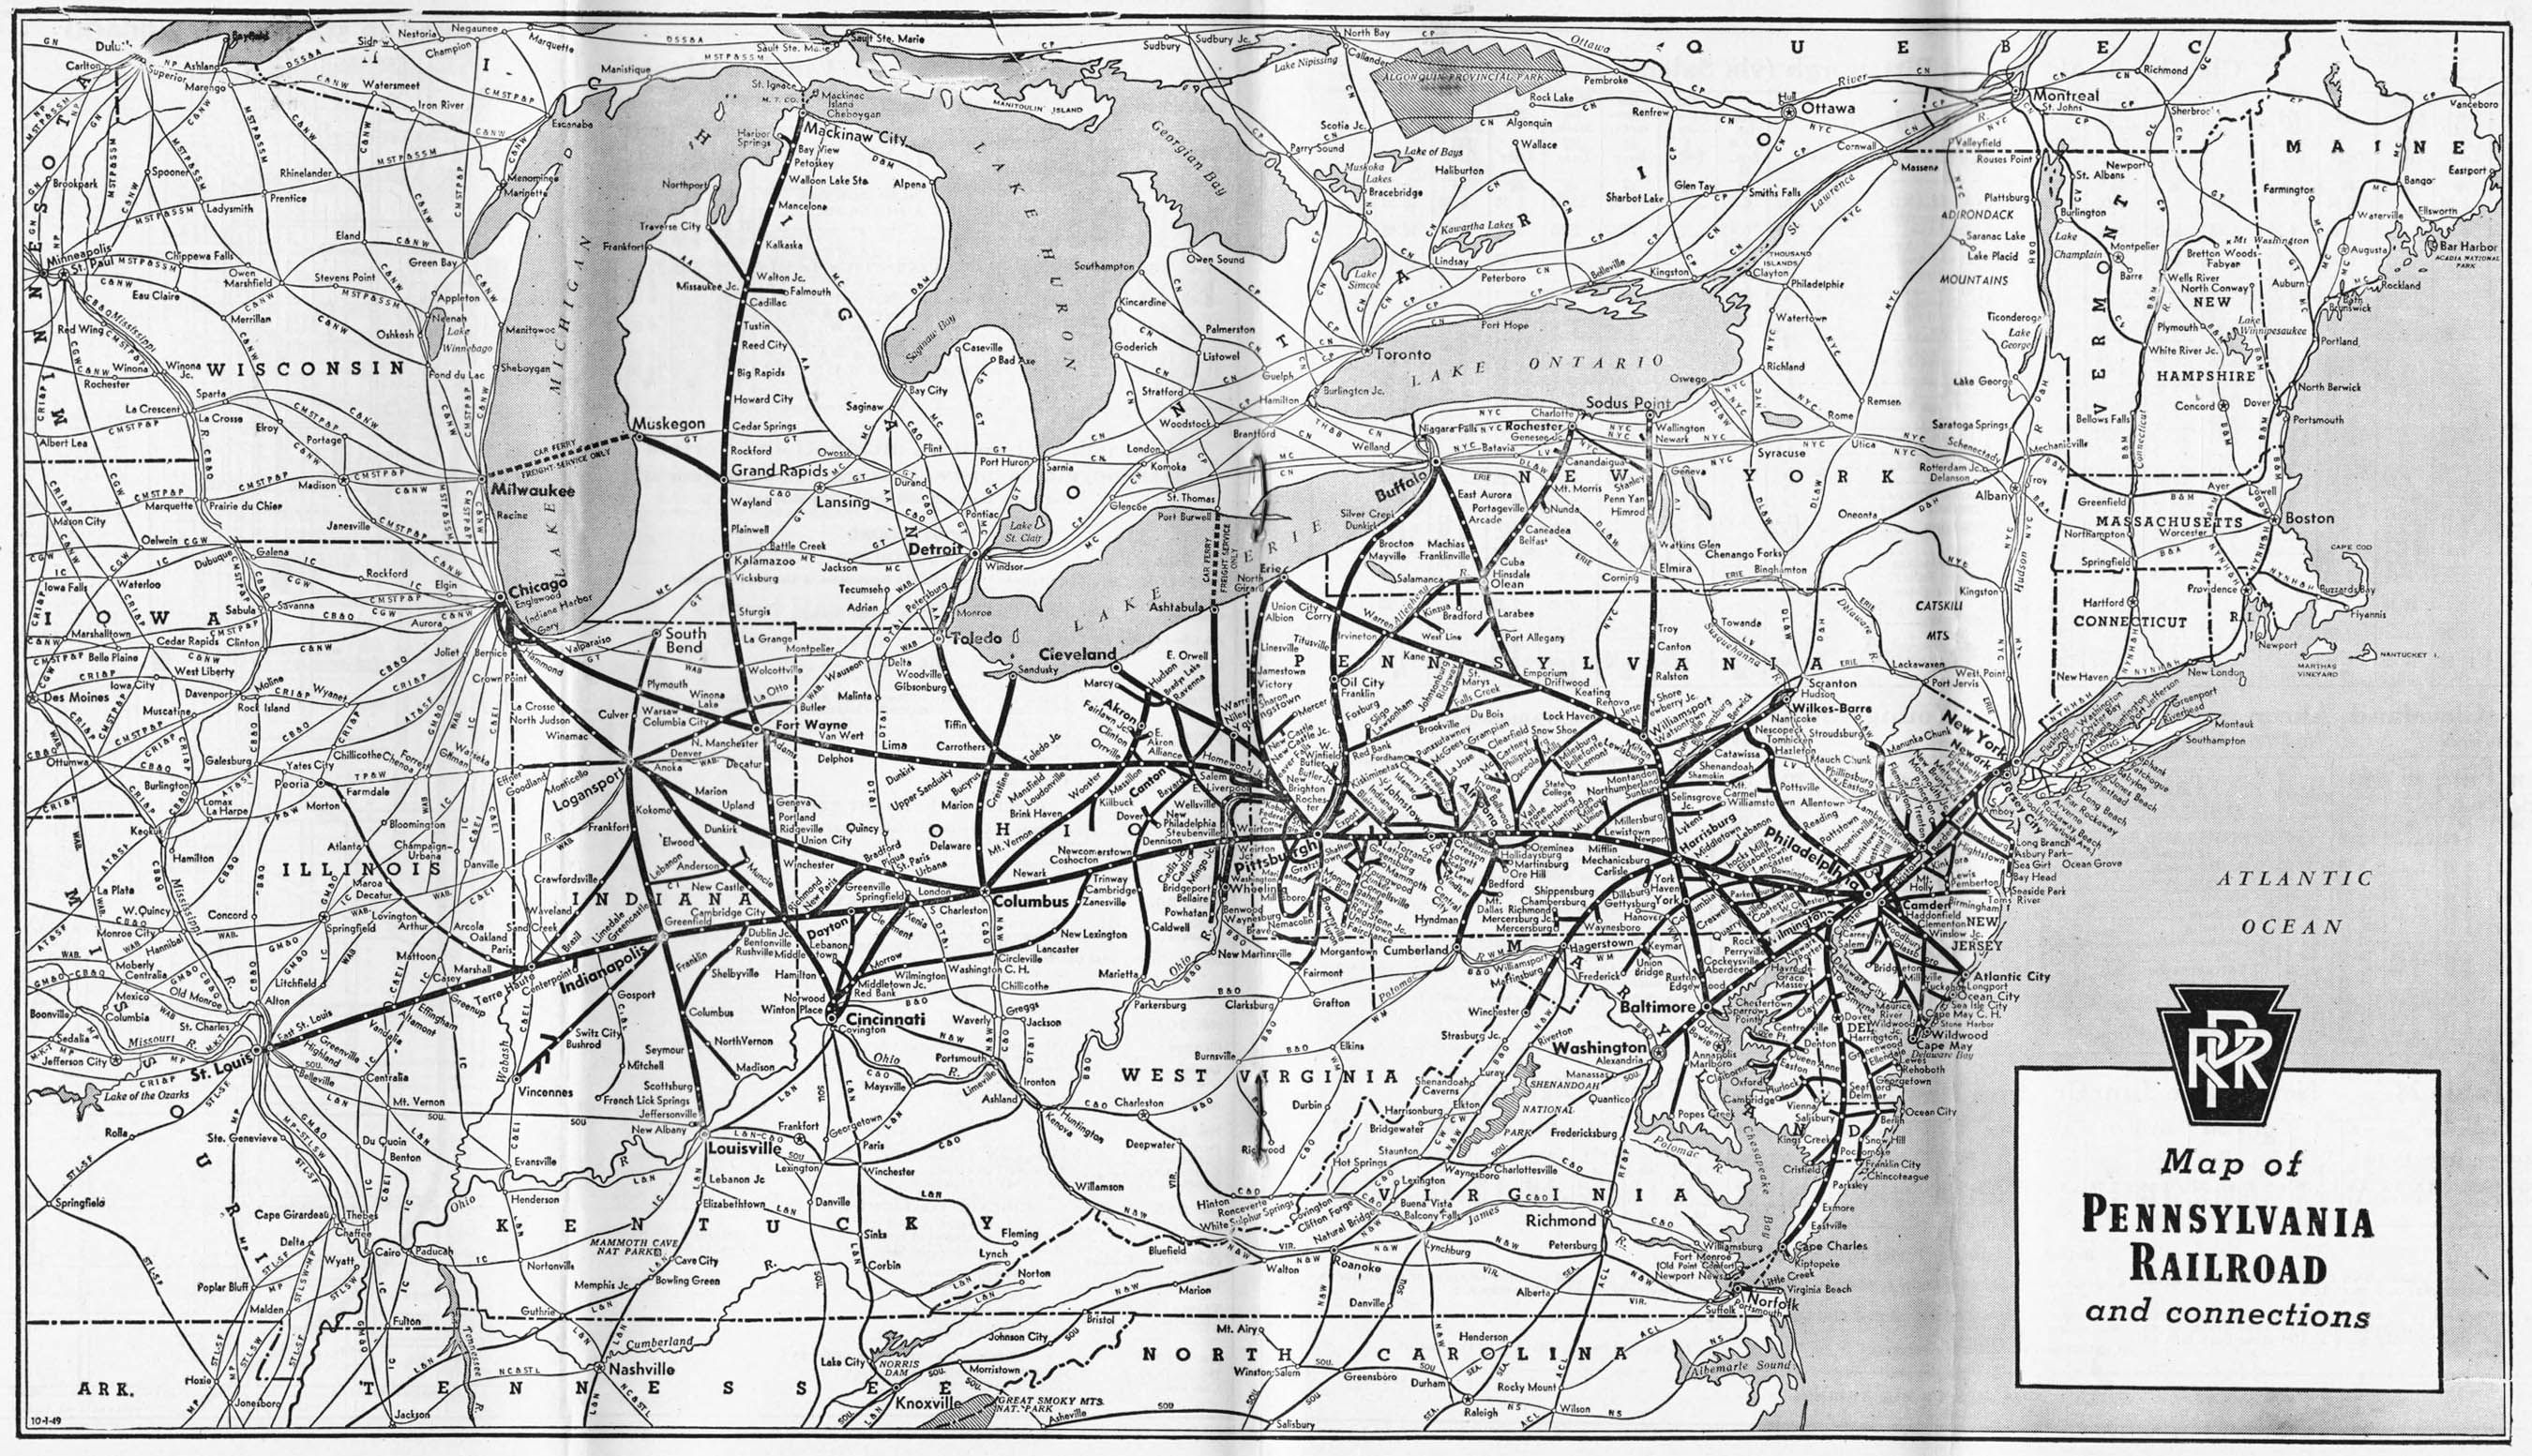 Pennsylvania Railroad Map The Pennsylvania Railroad which regarded itself as the Standard  Pennsylvania Railroad Map